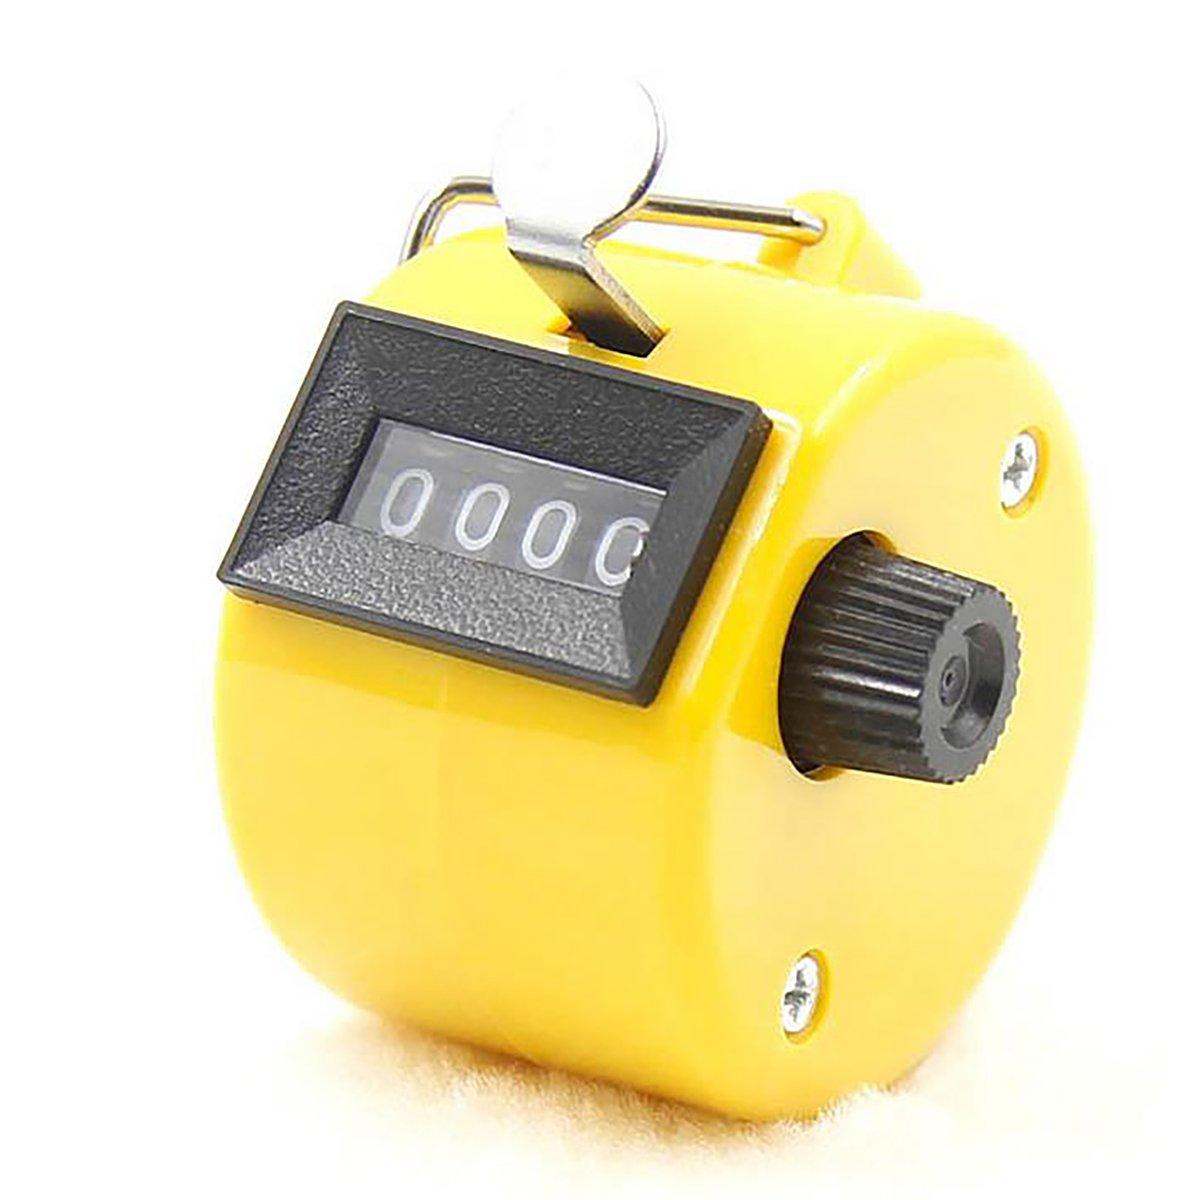 4 Digit Tally Counter Manual Clicker Lap Click Counter Hand Held Clicker for Walking Sport Stadium Coach Casino and Buddha Numbers, Yellow Rong Sa